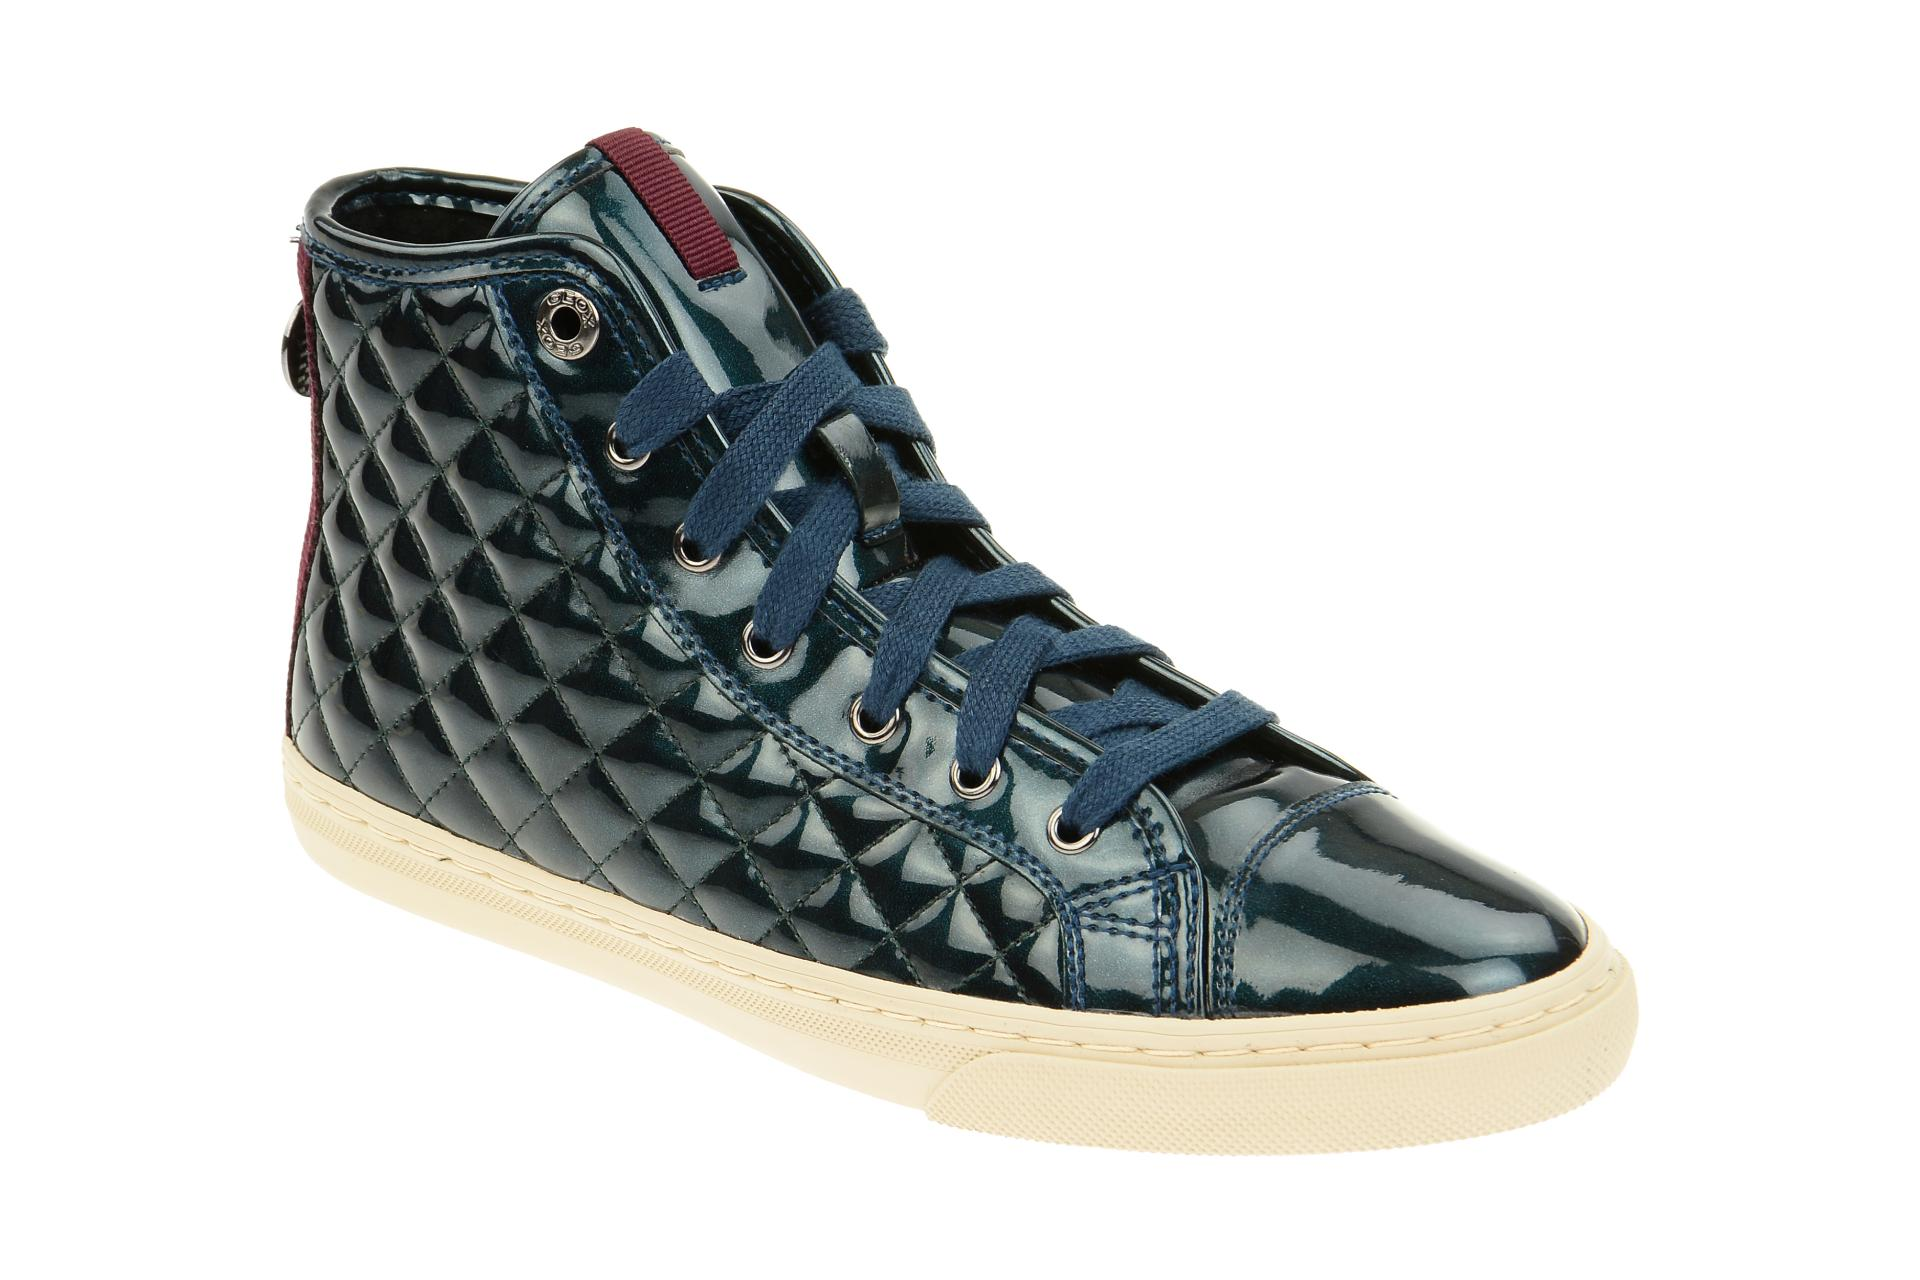 geox stiefelette new club damen sneakers blau metallic lack neu ebay. Black Bedroom Furniture Sets. Home Design Ideas